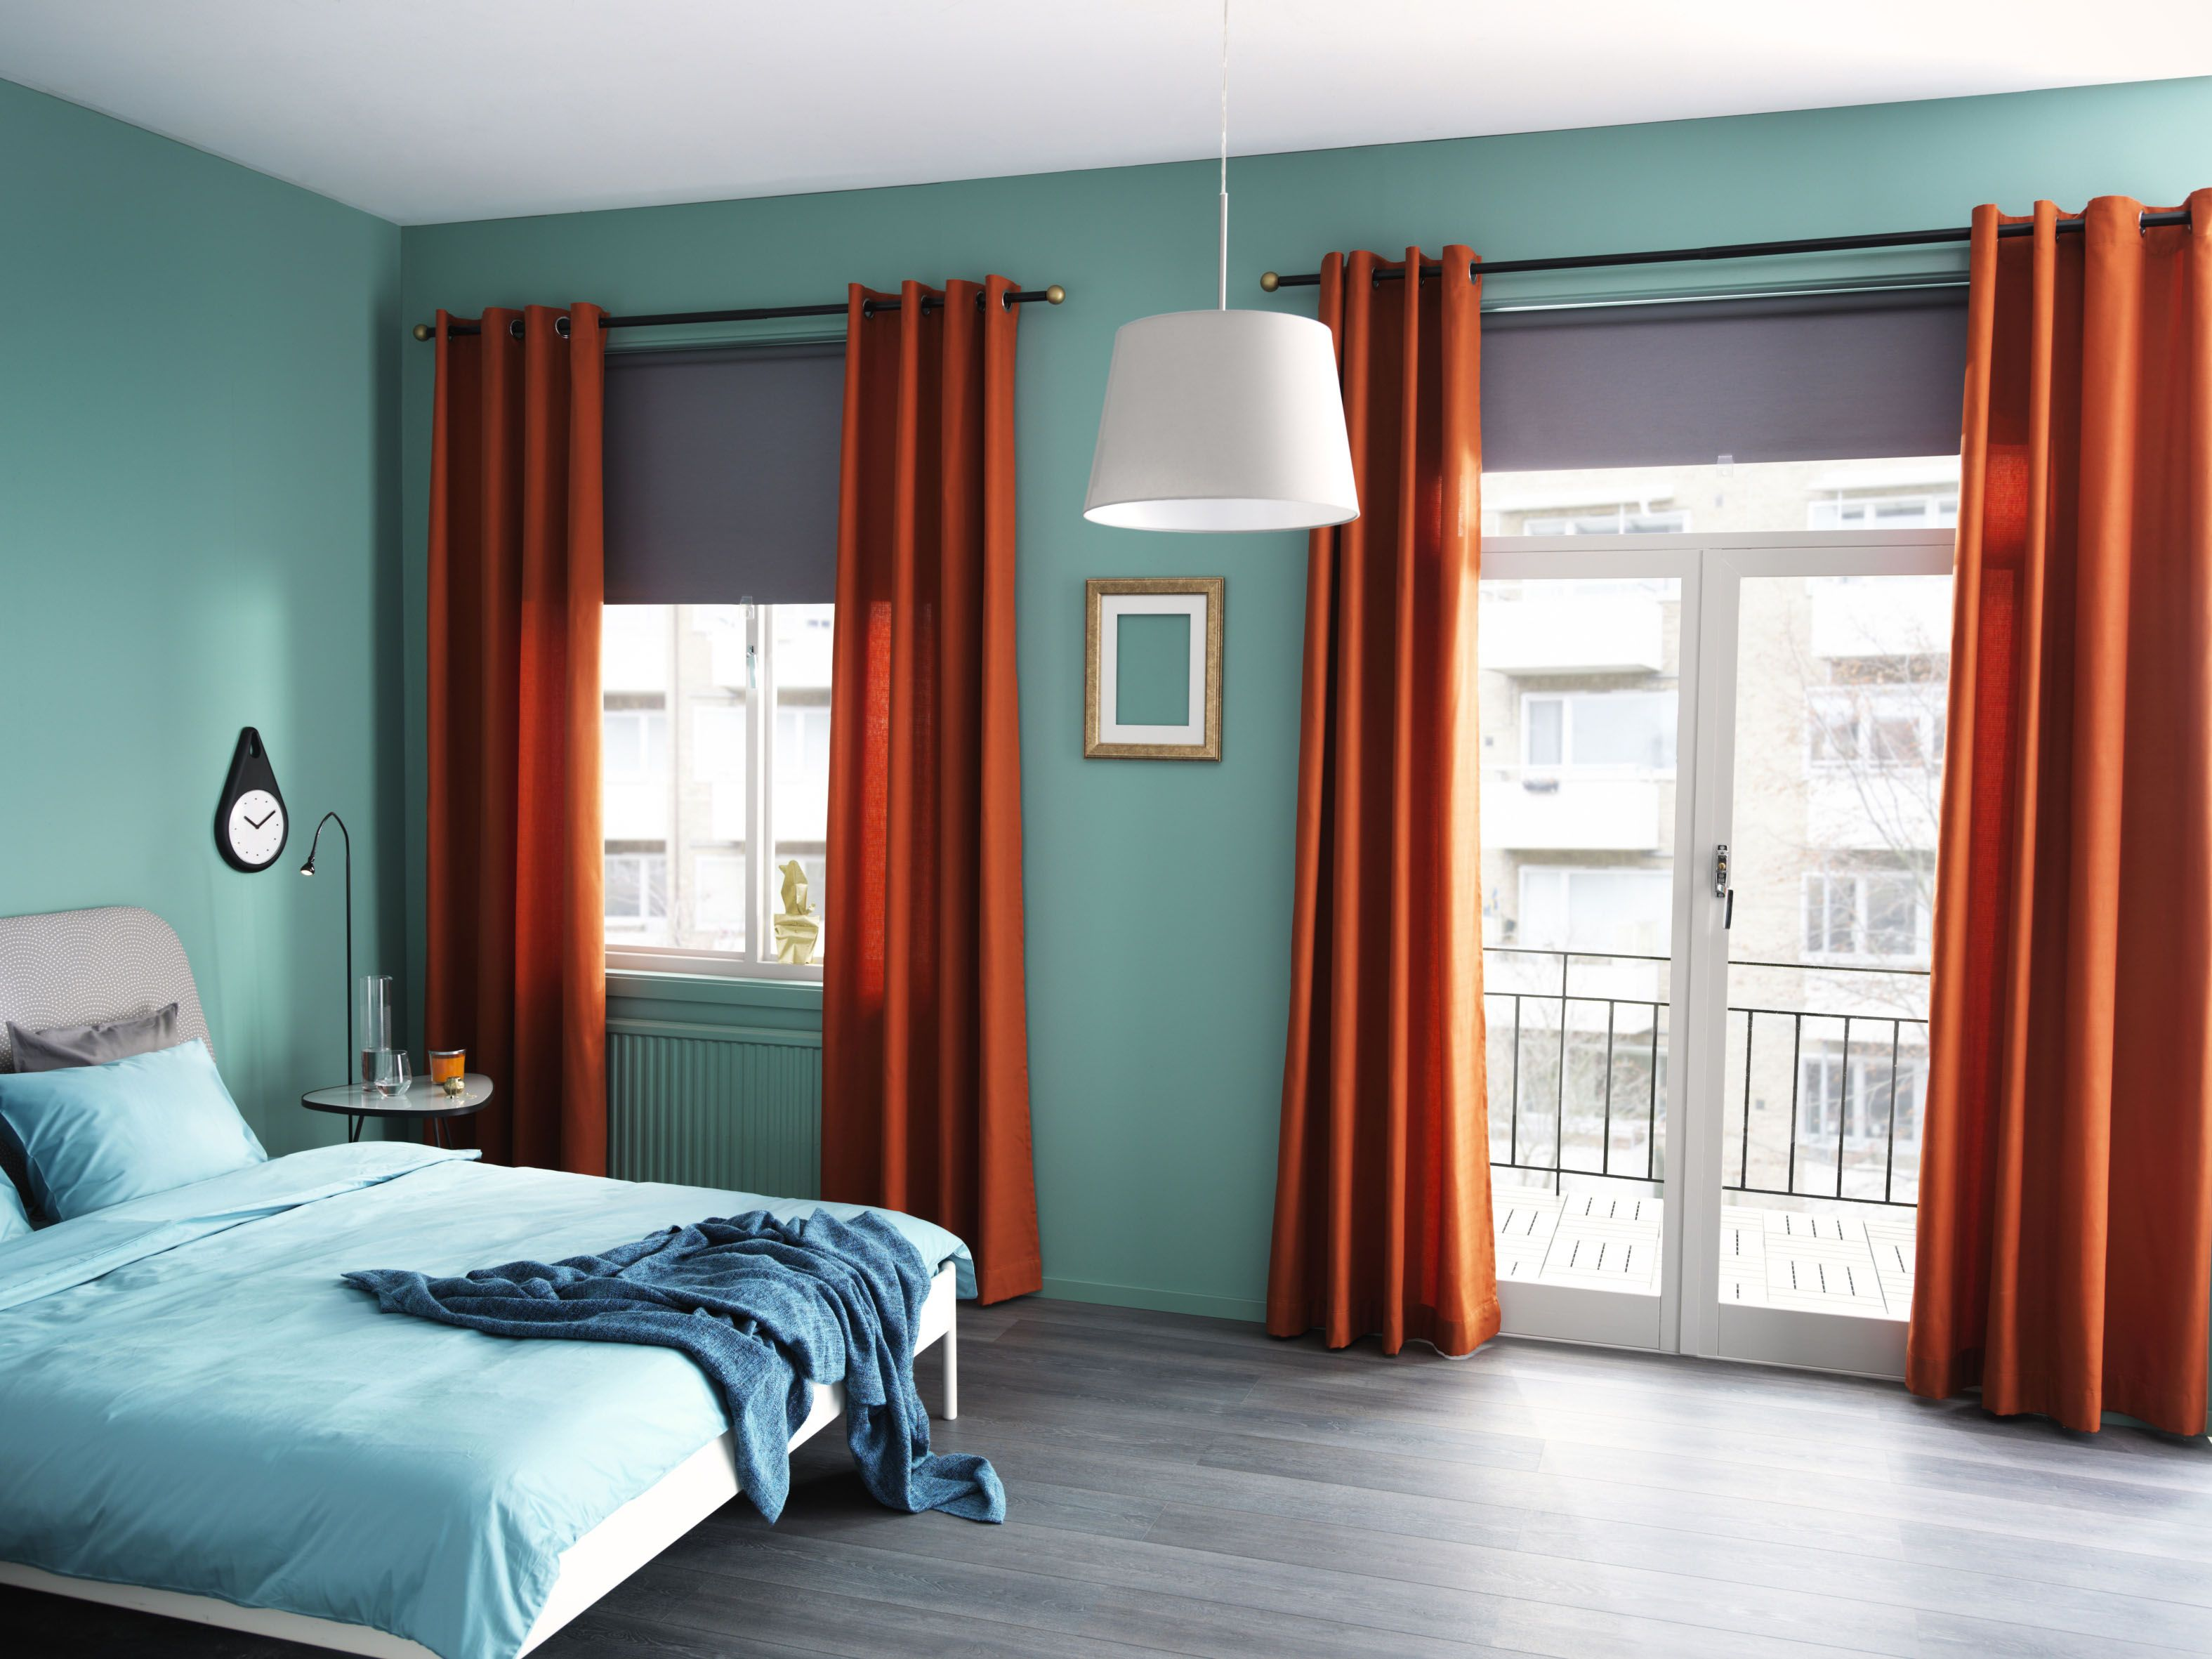 home curtain walls orange and of xf ideas color fascinating trends curtains kitchen under fancy decor burnt popular